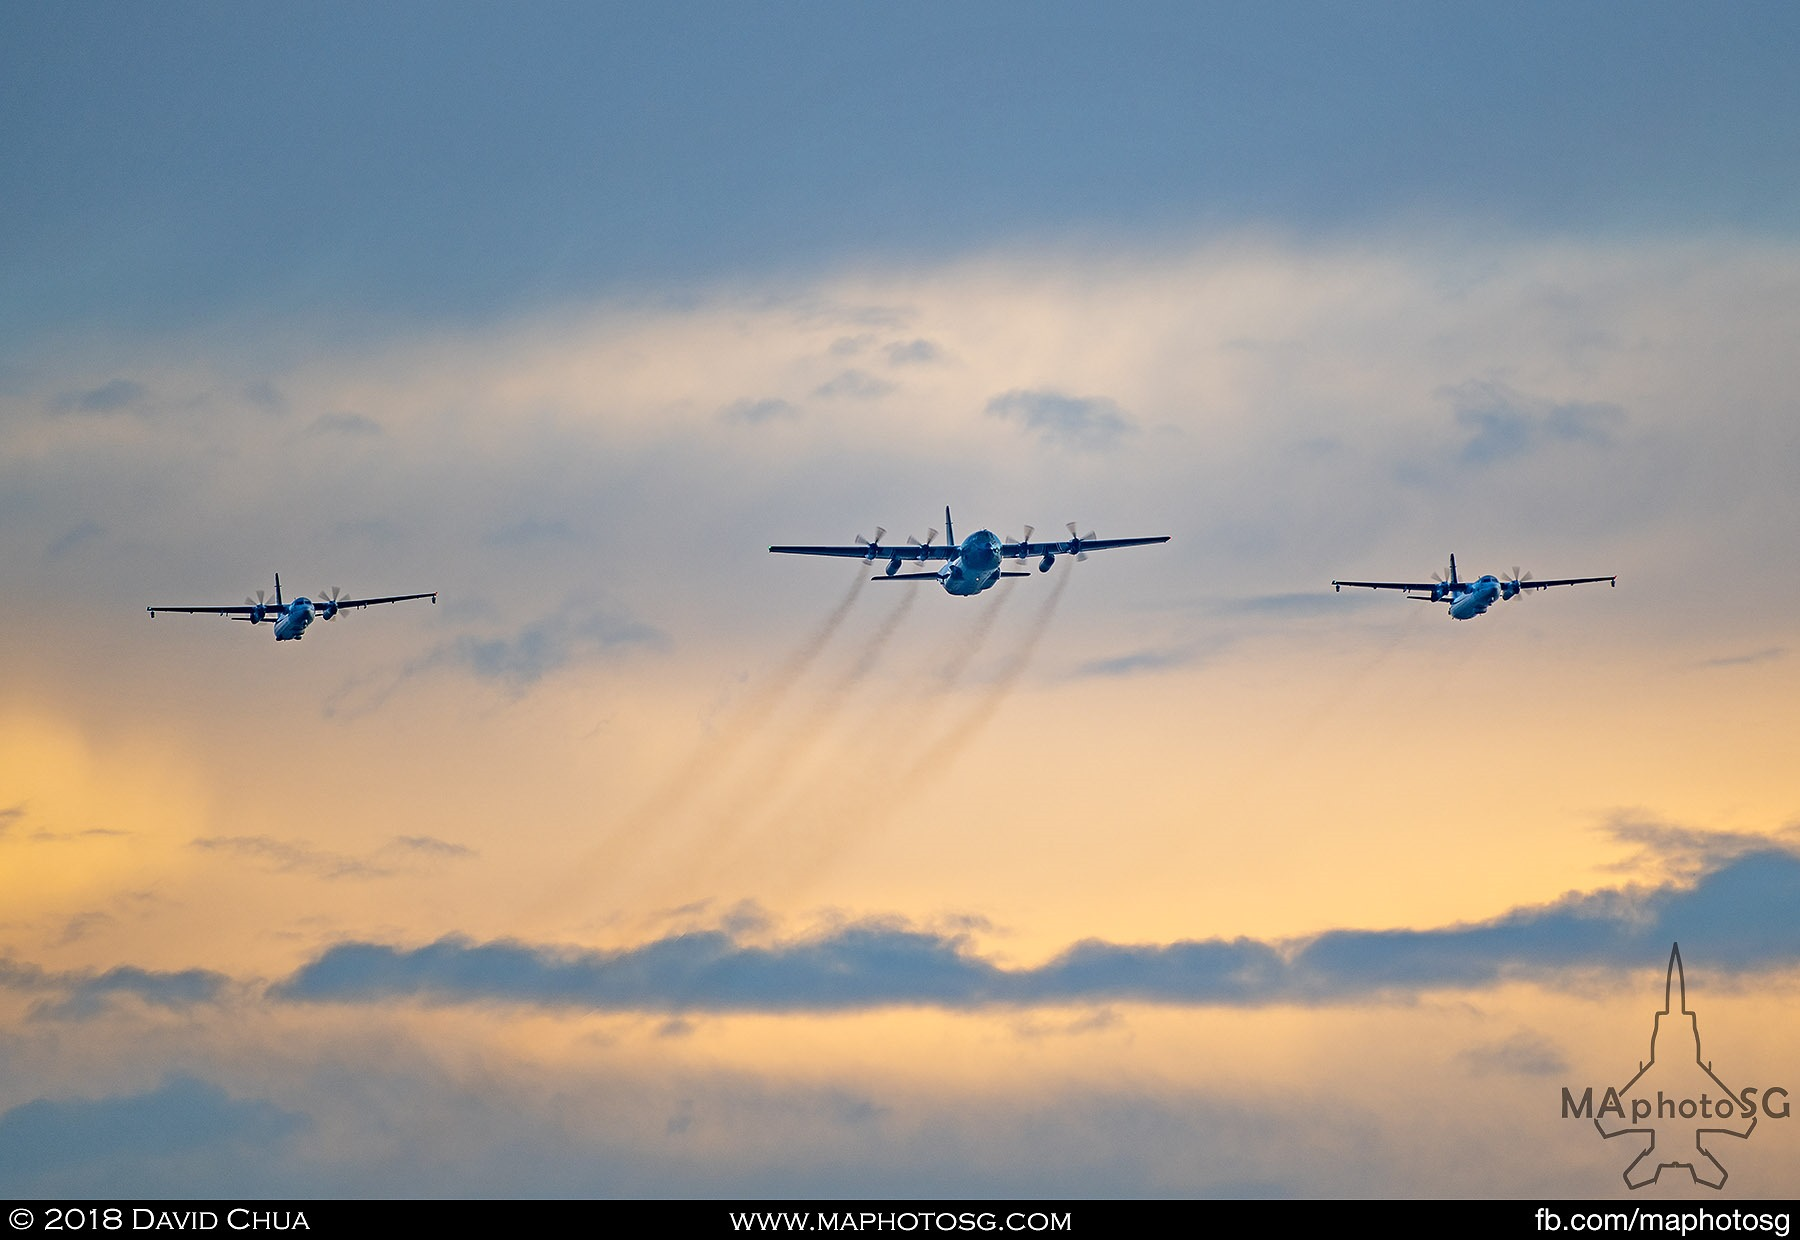 26. Transport formation of a C-130H Hercules flanked by two Fokker 50 Maritime Patrol Aircraft.